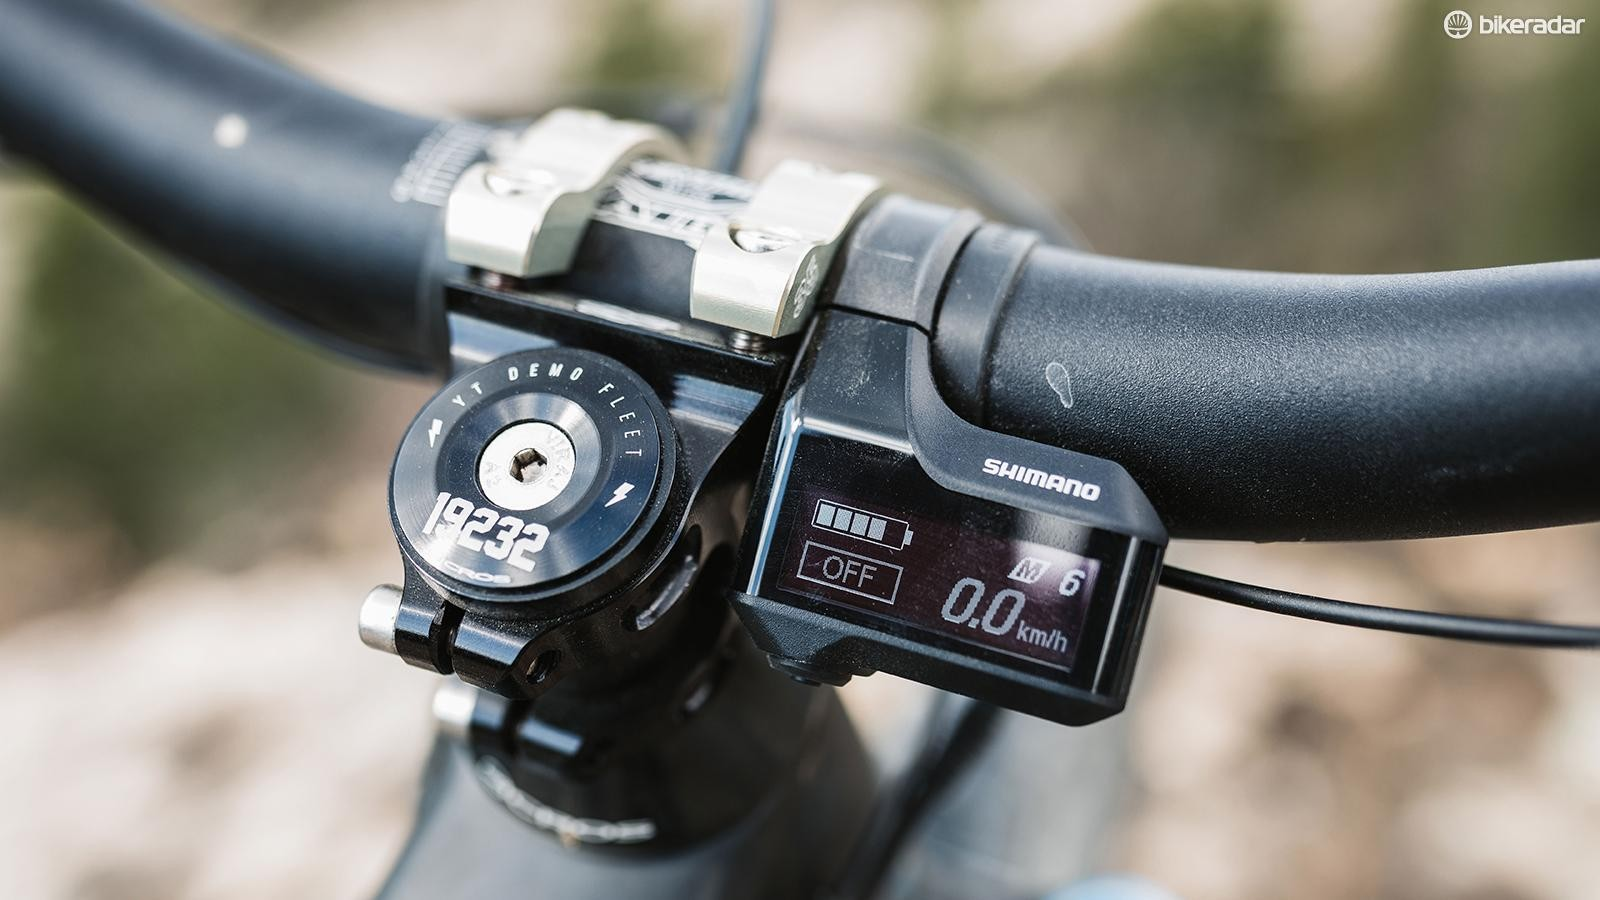 The Shimano E7000 display tucks in nicely against the stem